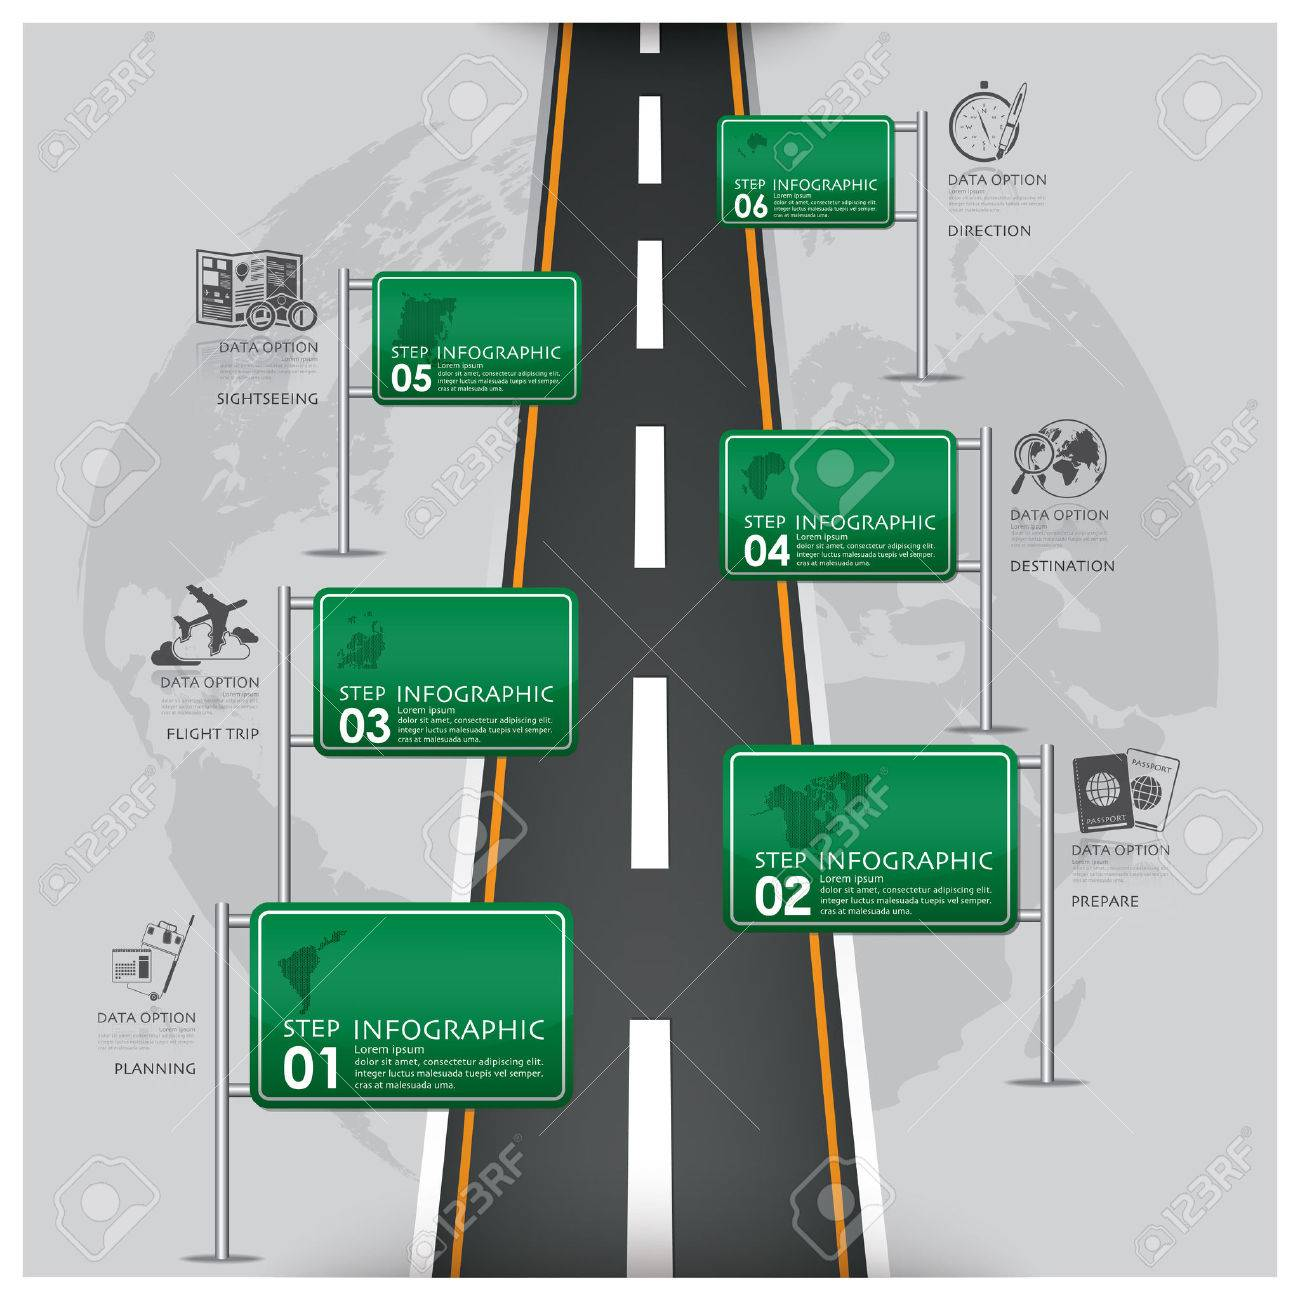 Road And Street Traffic Sign Business Travel Infographic Design